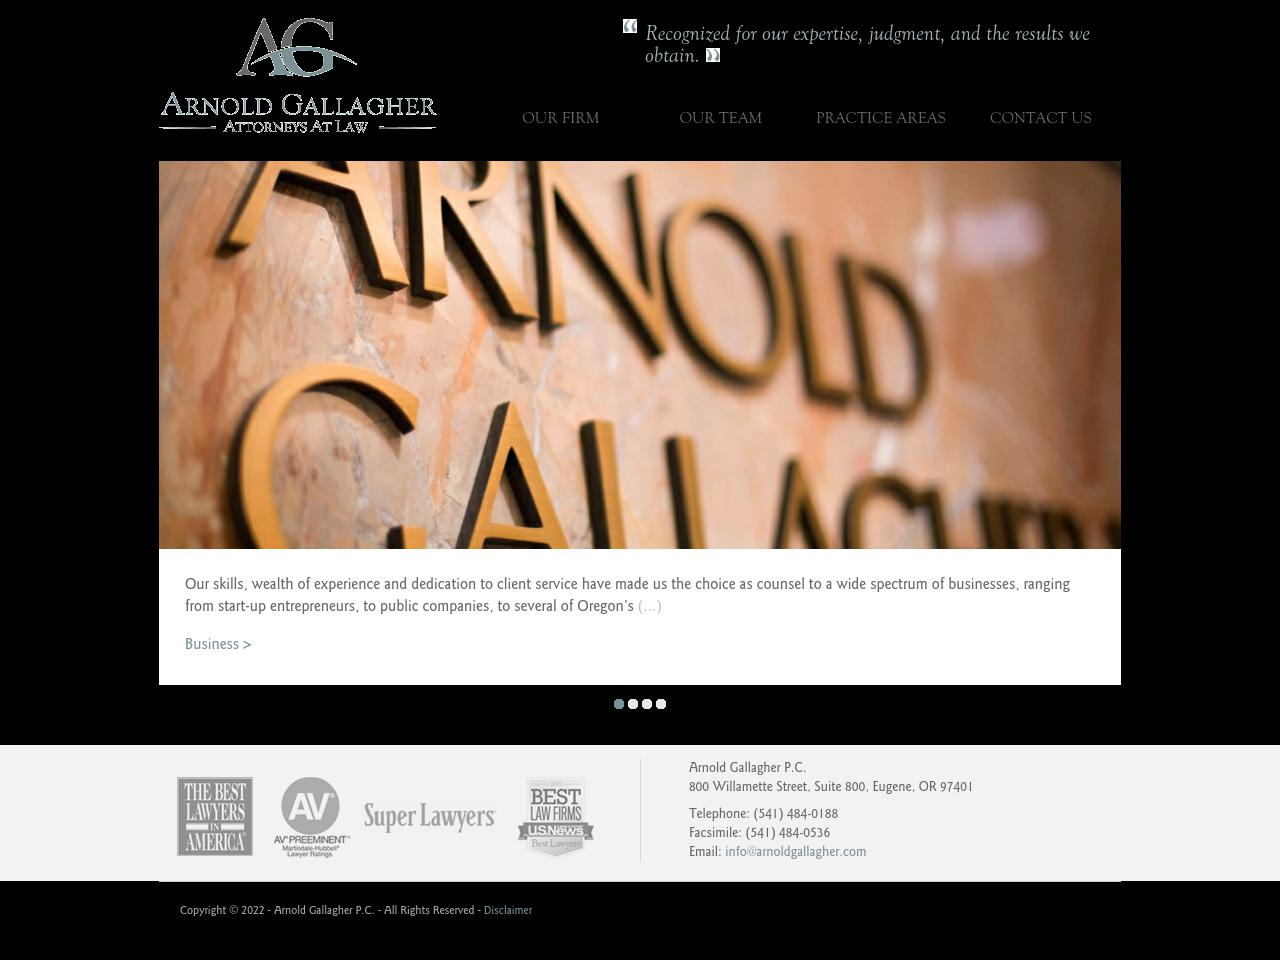 Arnold Gallagher, PC - Eugene OR Lawyers